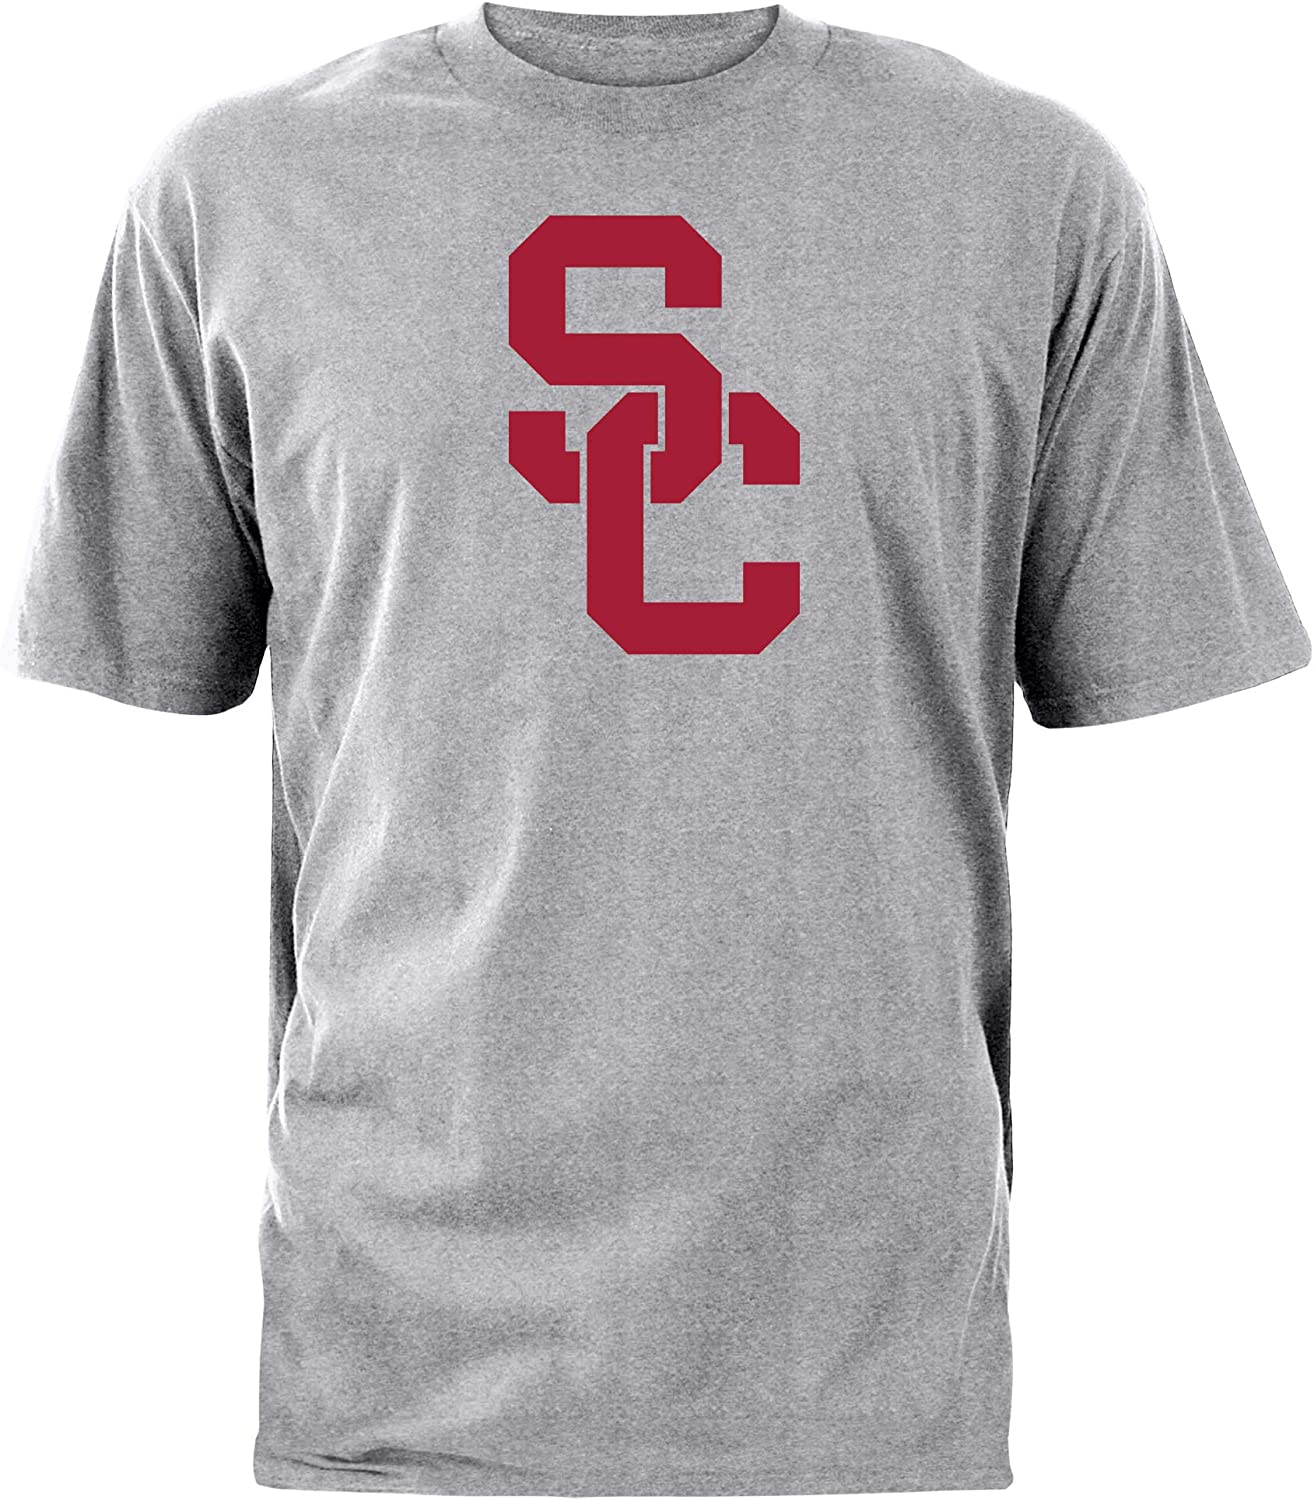 University of Southern California Authentic Apparel NCAA Mens Short Sleeve Cotton Tee